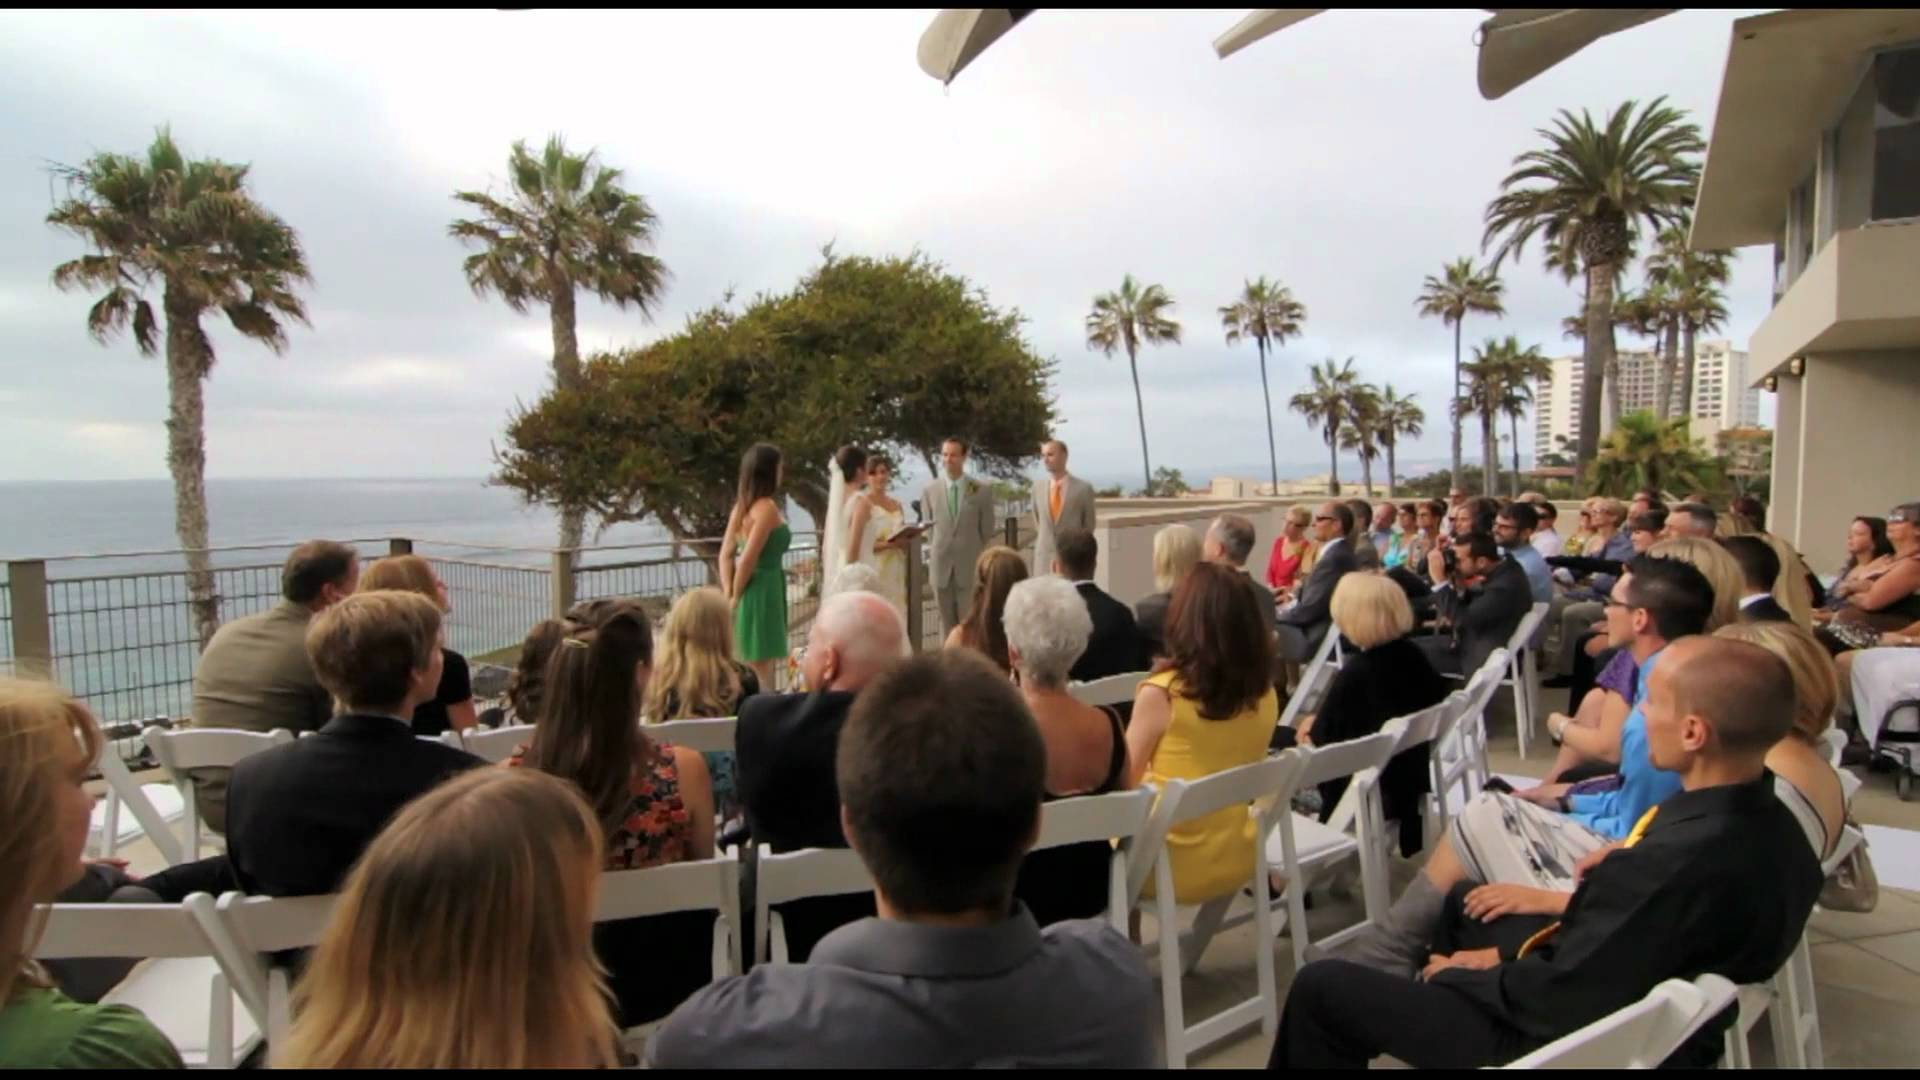 Our Lady of the Rosary Catholic Church San Diego, Jenna & Chris - 7.14.12 - Museum of Contemporary Art San Diego ...